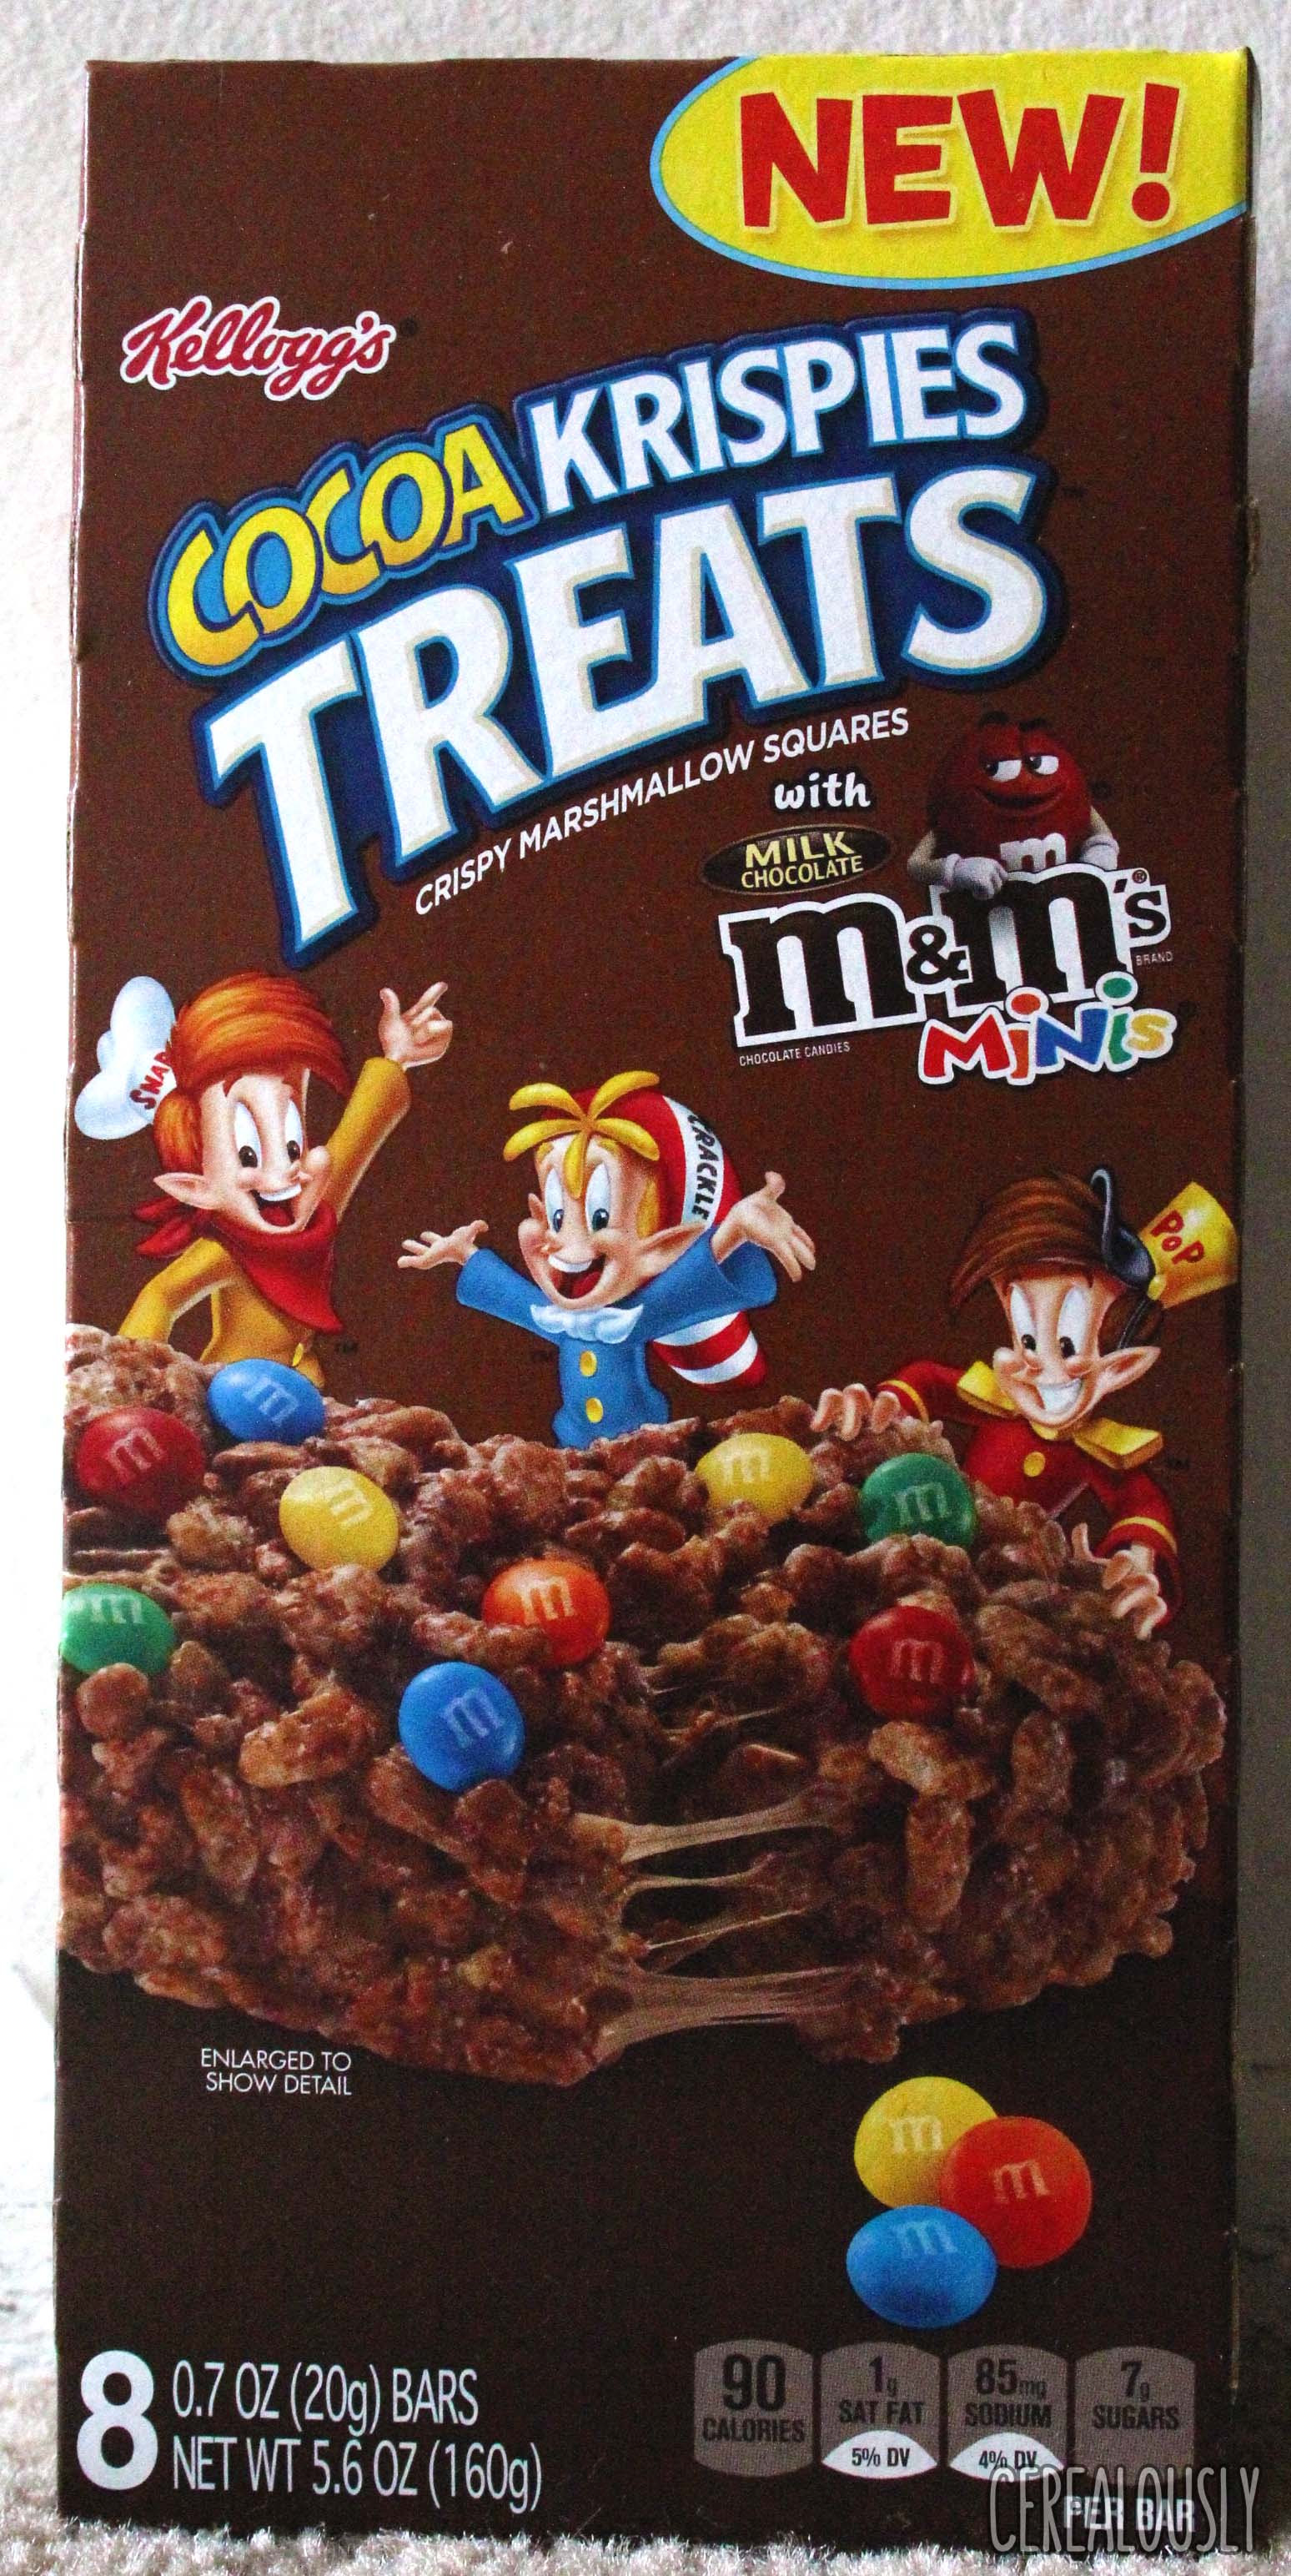 Review: Kellogg's Cocoa Krispies Treats with M&M's Minis